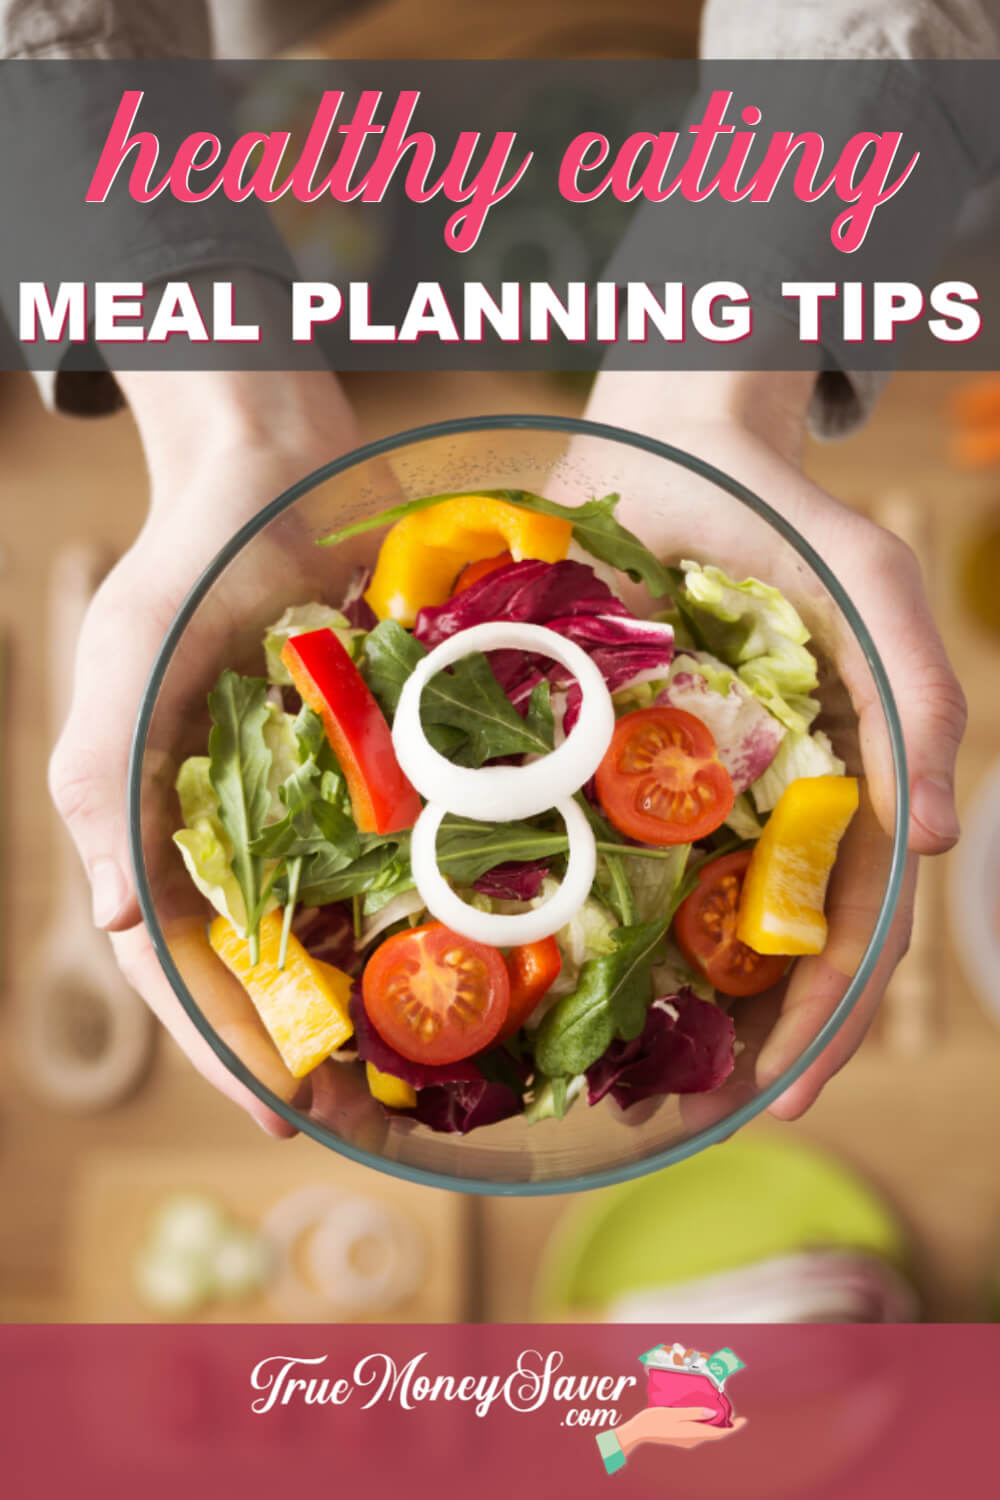 Tips For Healthy Eating Meal Planning